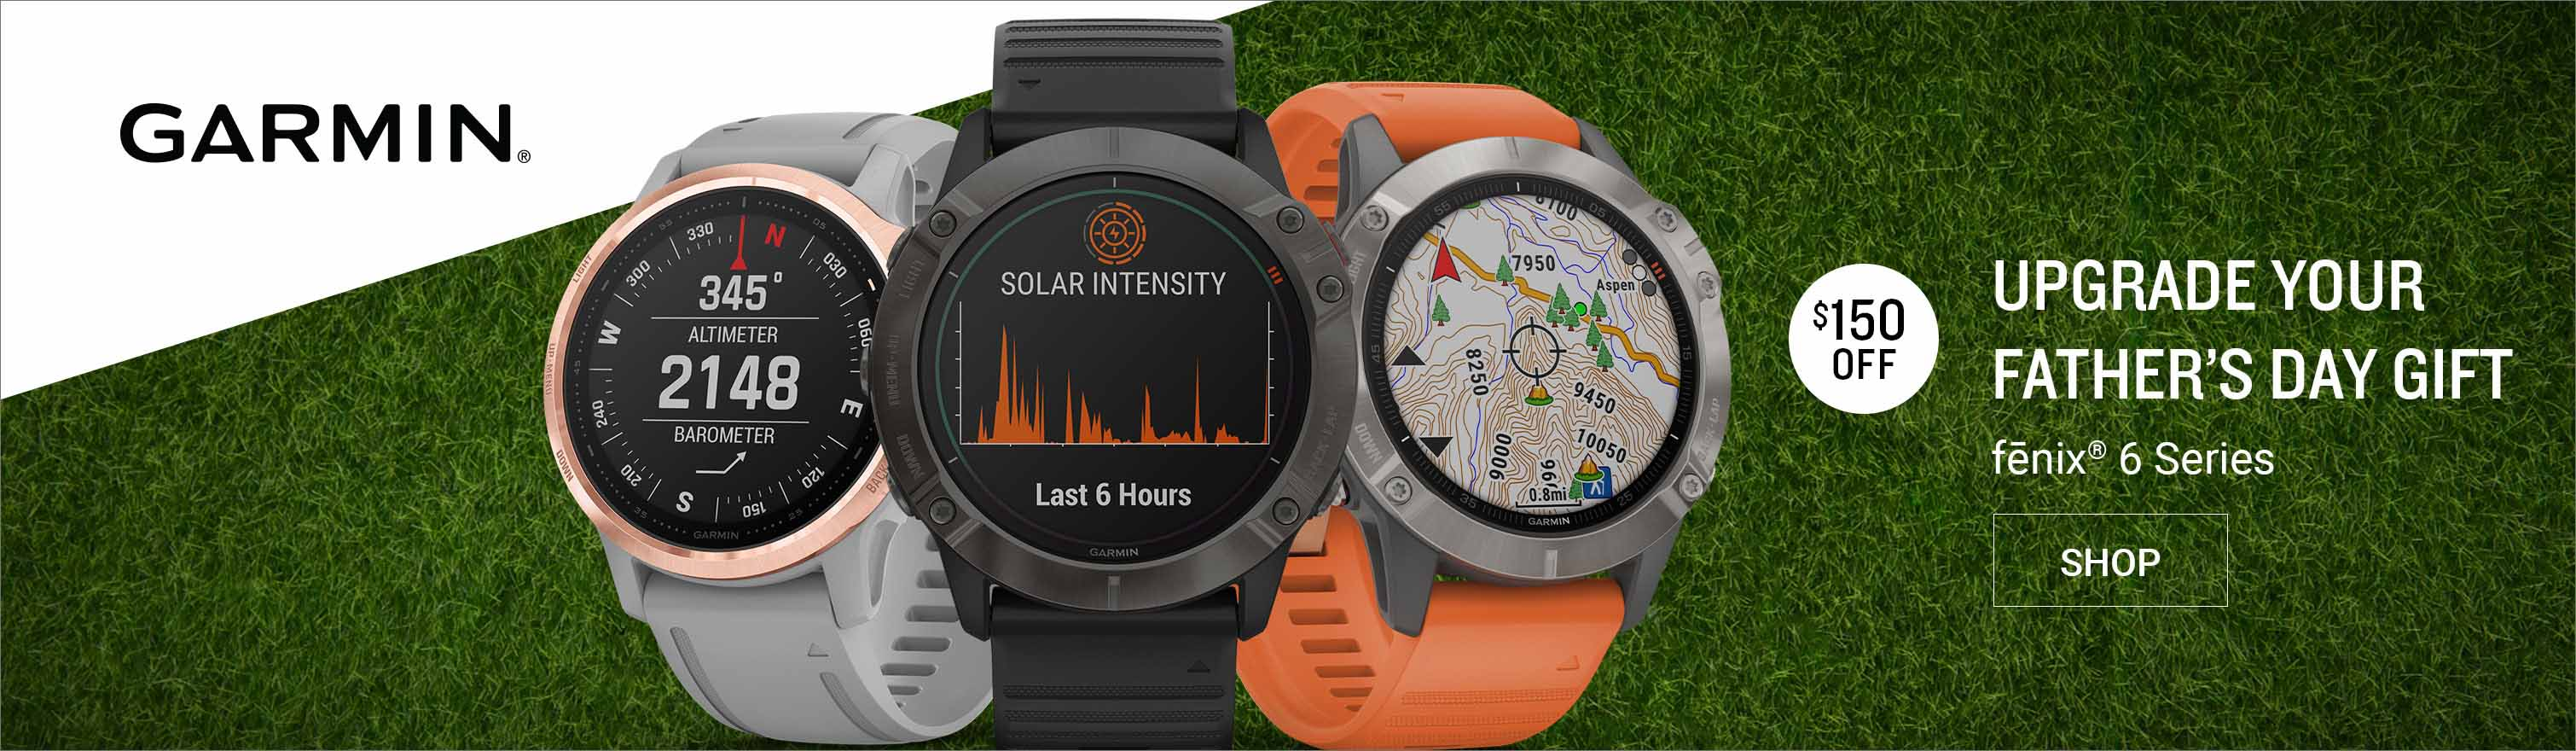 Save up to $150 on Select Garmin Fenix Watches